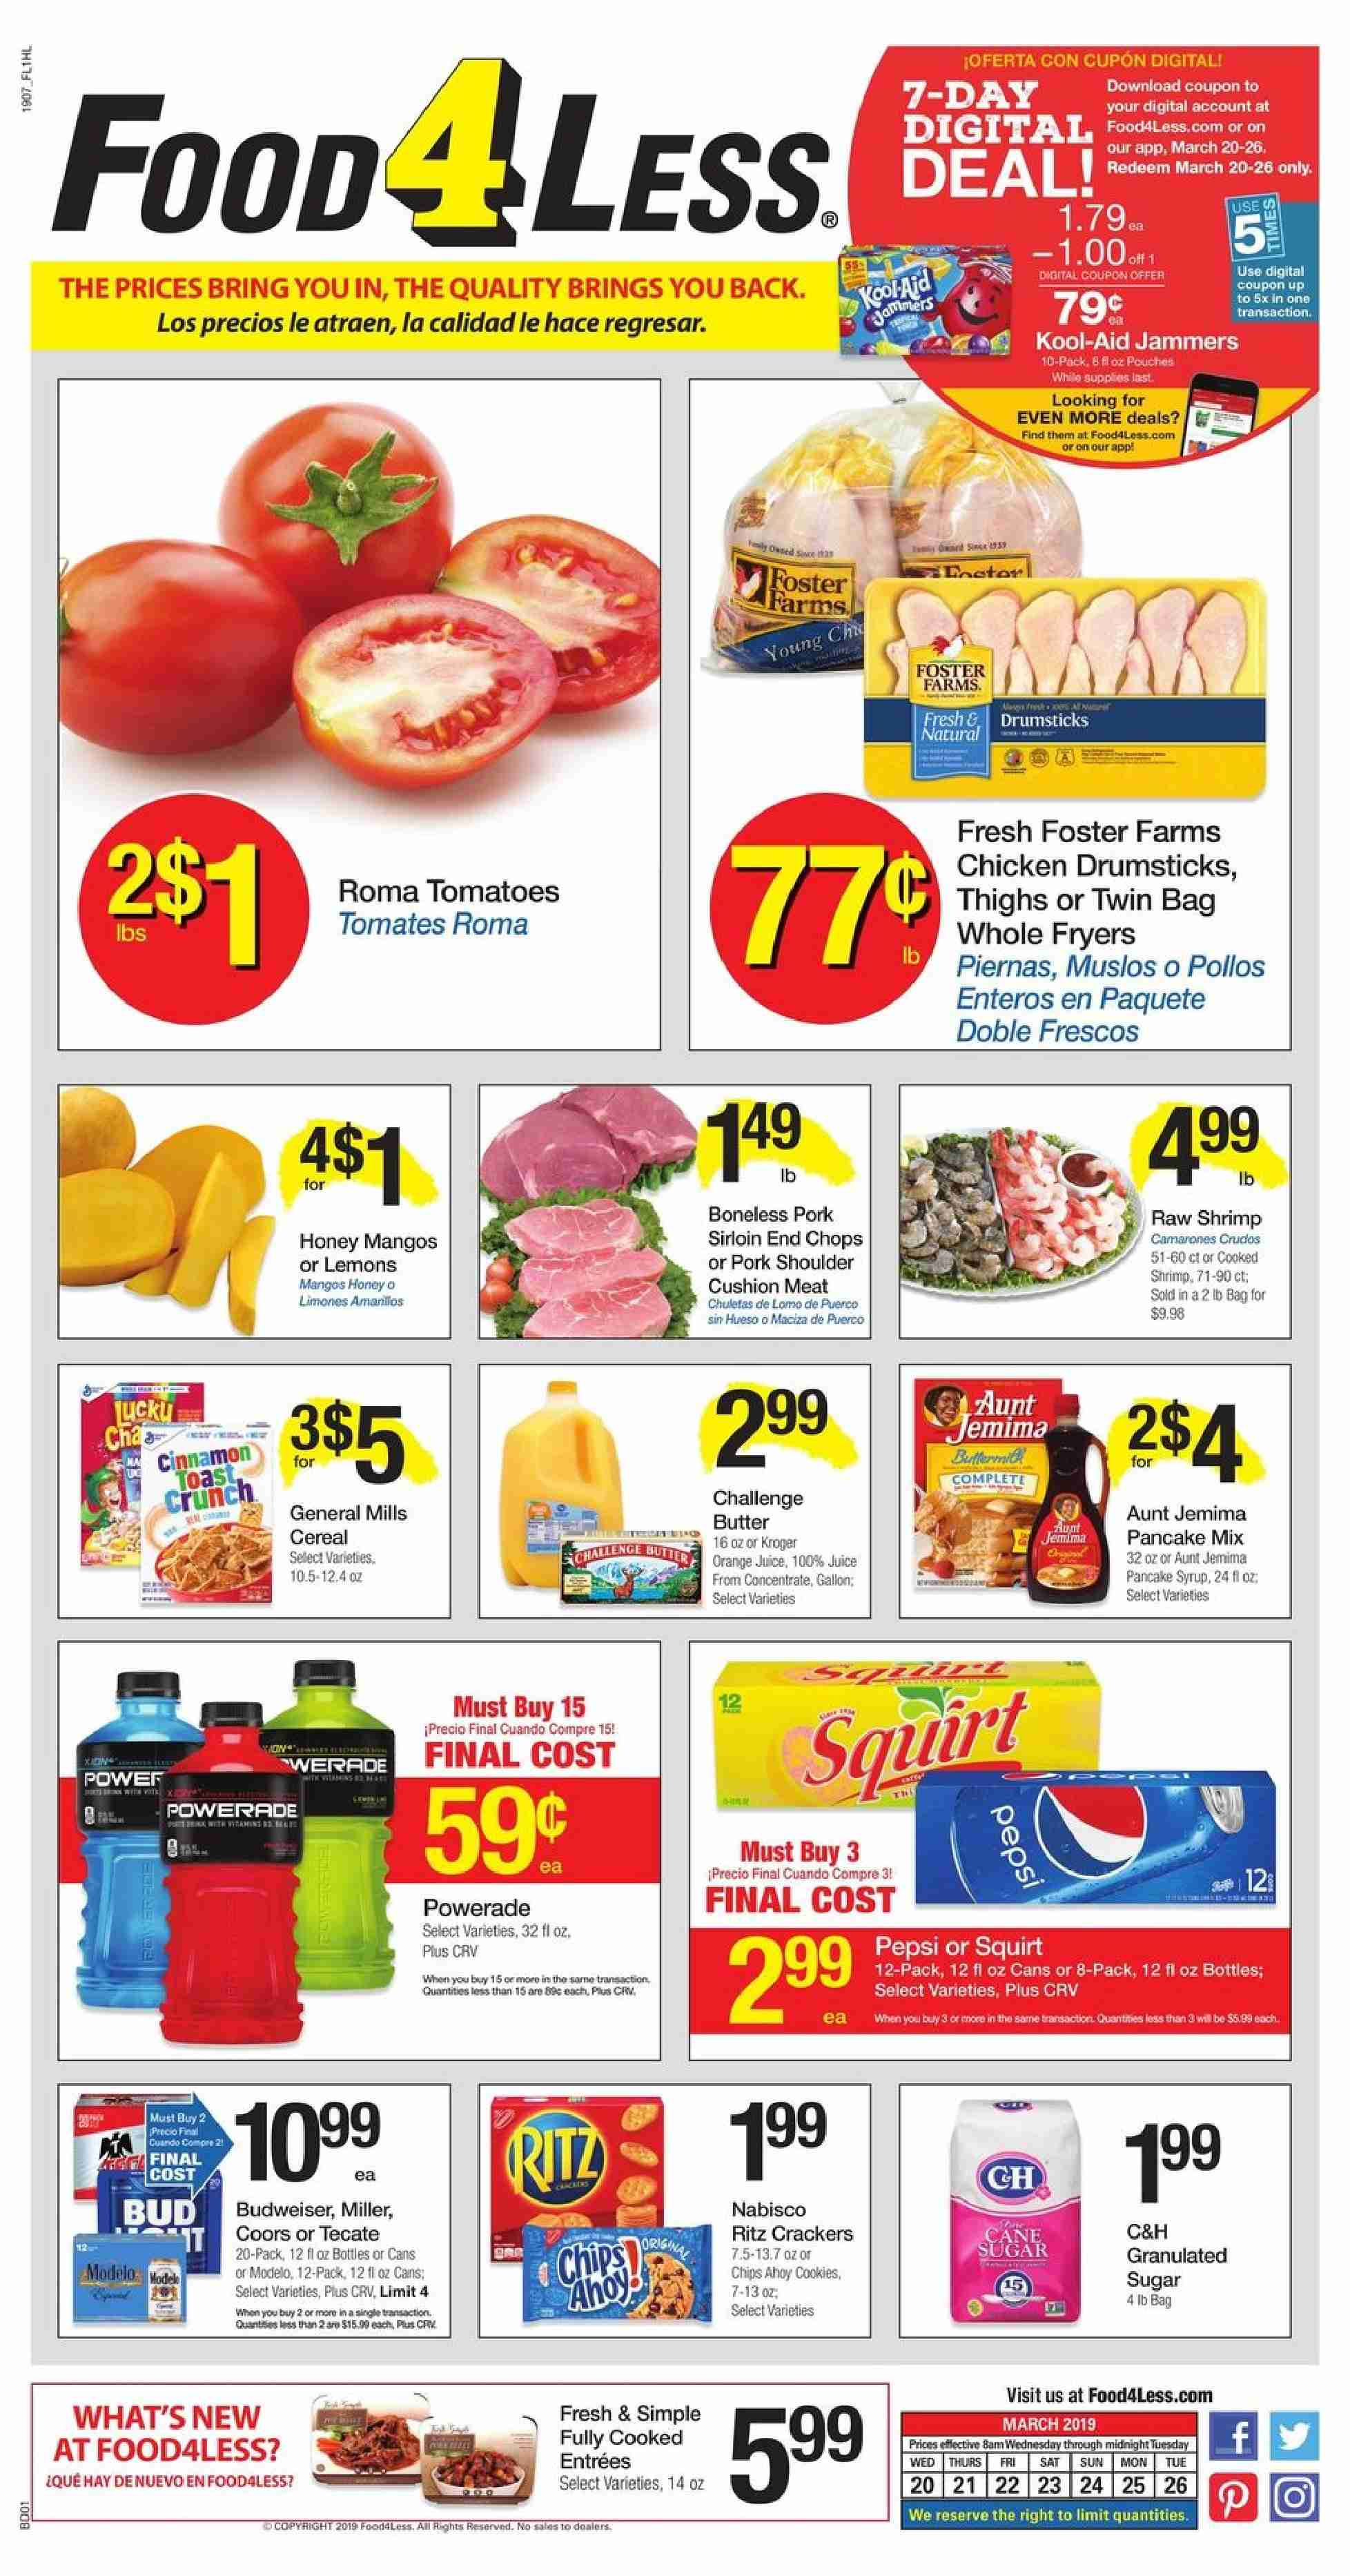 Food 4 Less Flyer - 03.20.2019 - 03.26.2019 - Sales products - Coors, cushion, tomatoes, mango, orange, lemons, pancake, shrimps, cookies, crackers, chips, granulated sugar, sugar, honey, pancake syrup, Powerade, orange juice, juice, syrup, chicken, chicken legs, pork meat, pork shoulder. Page 1.